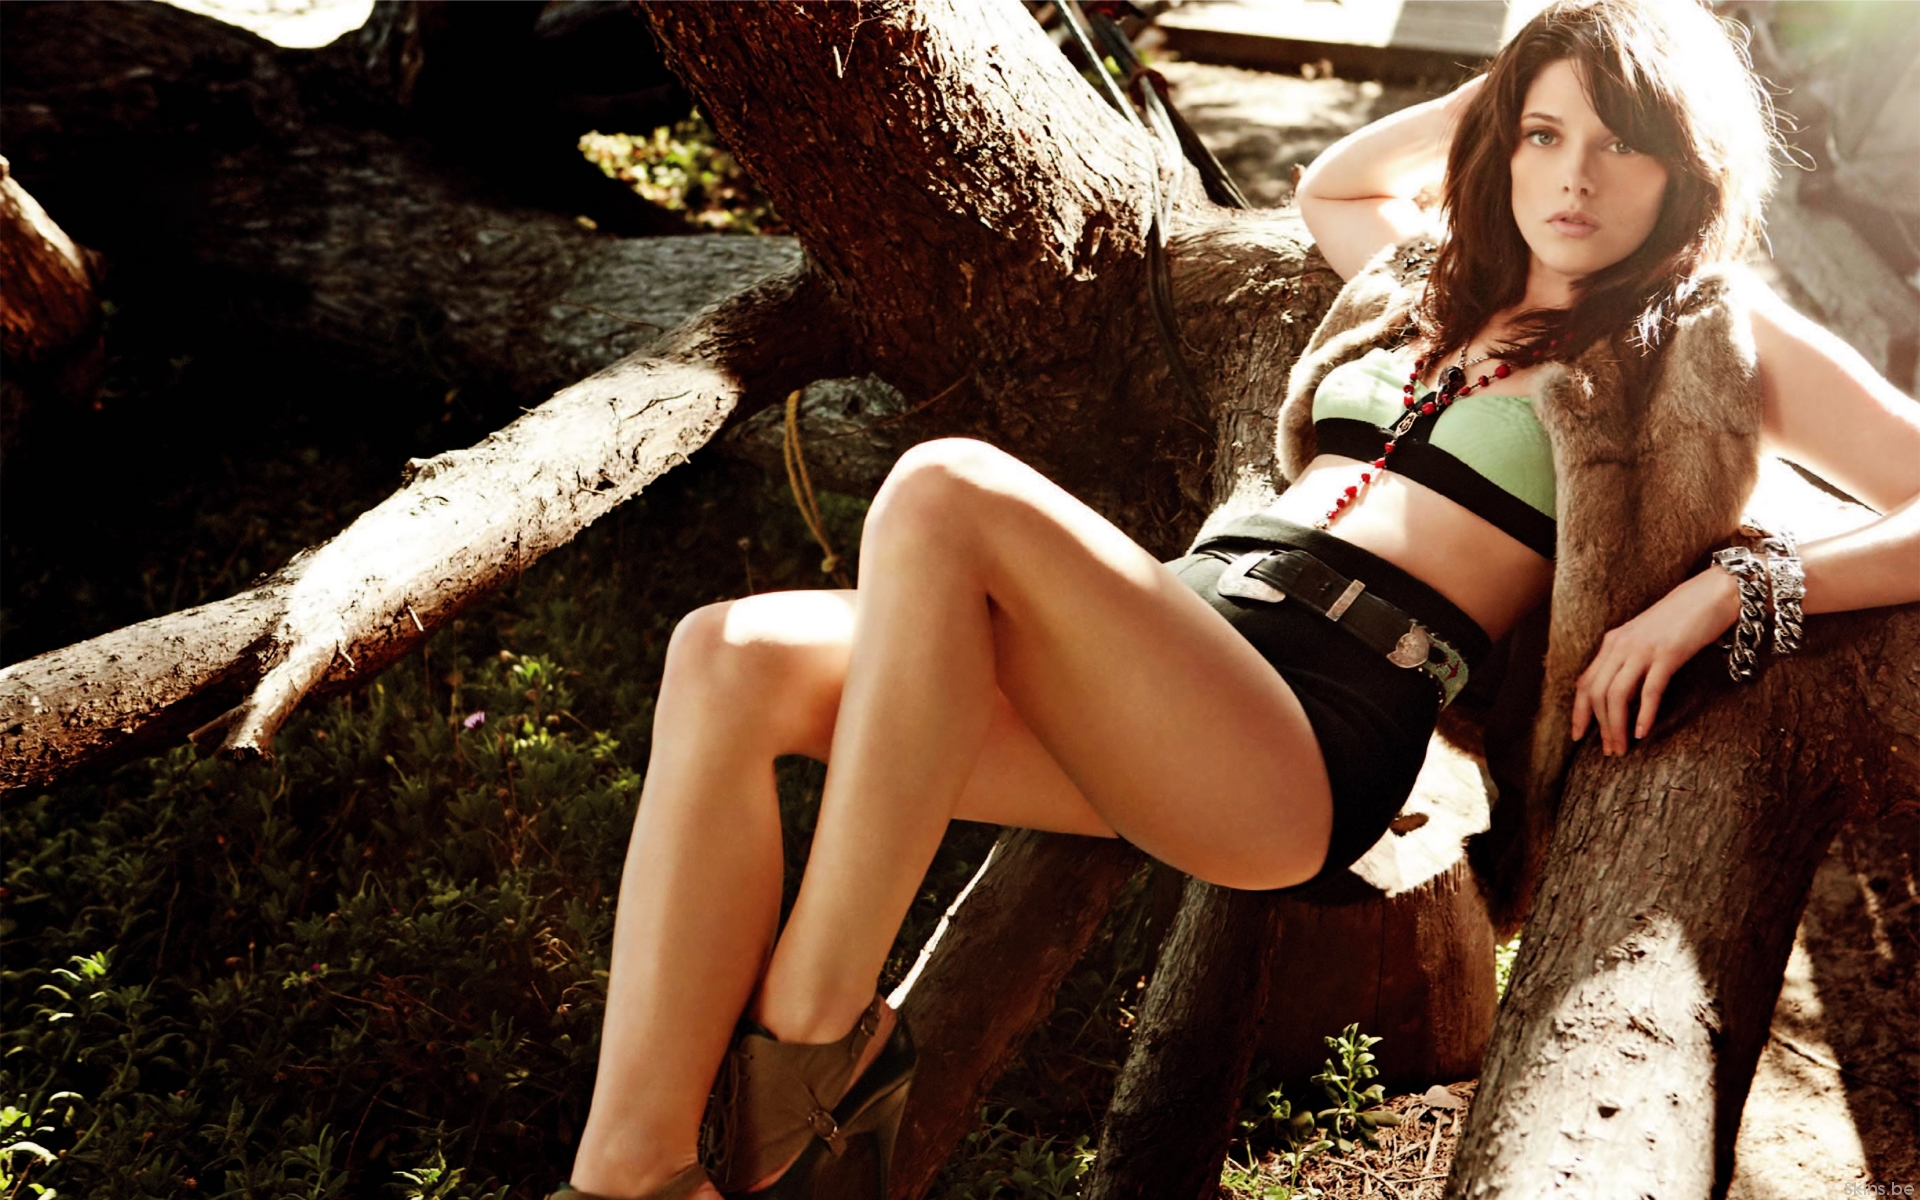 Ashley Greene actress model brunettes women females girls sexy babes cleavage legs